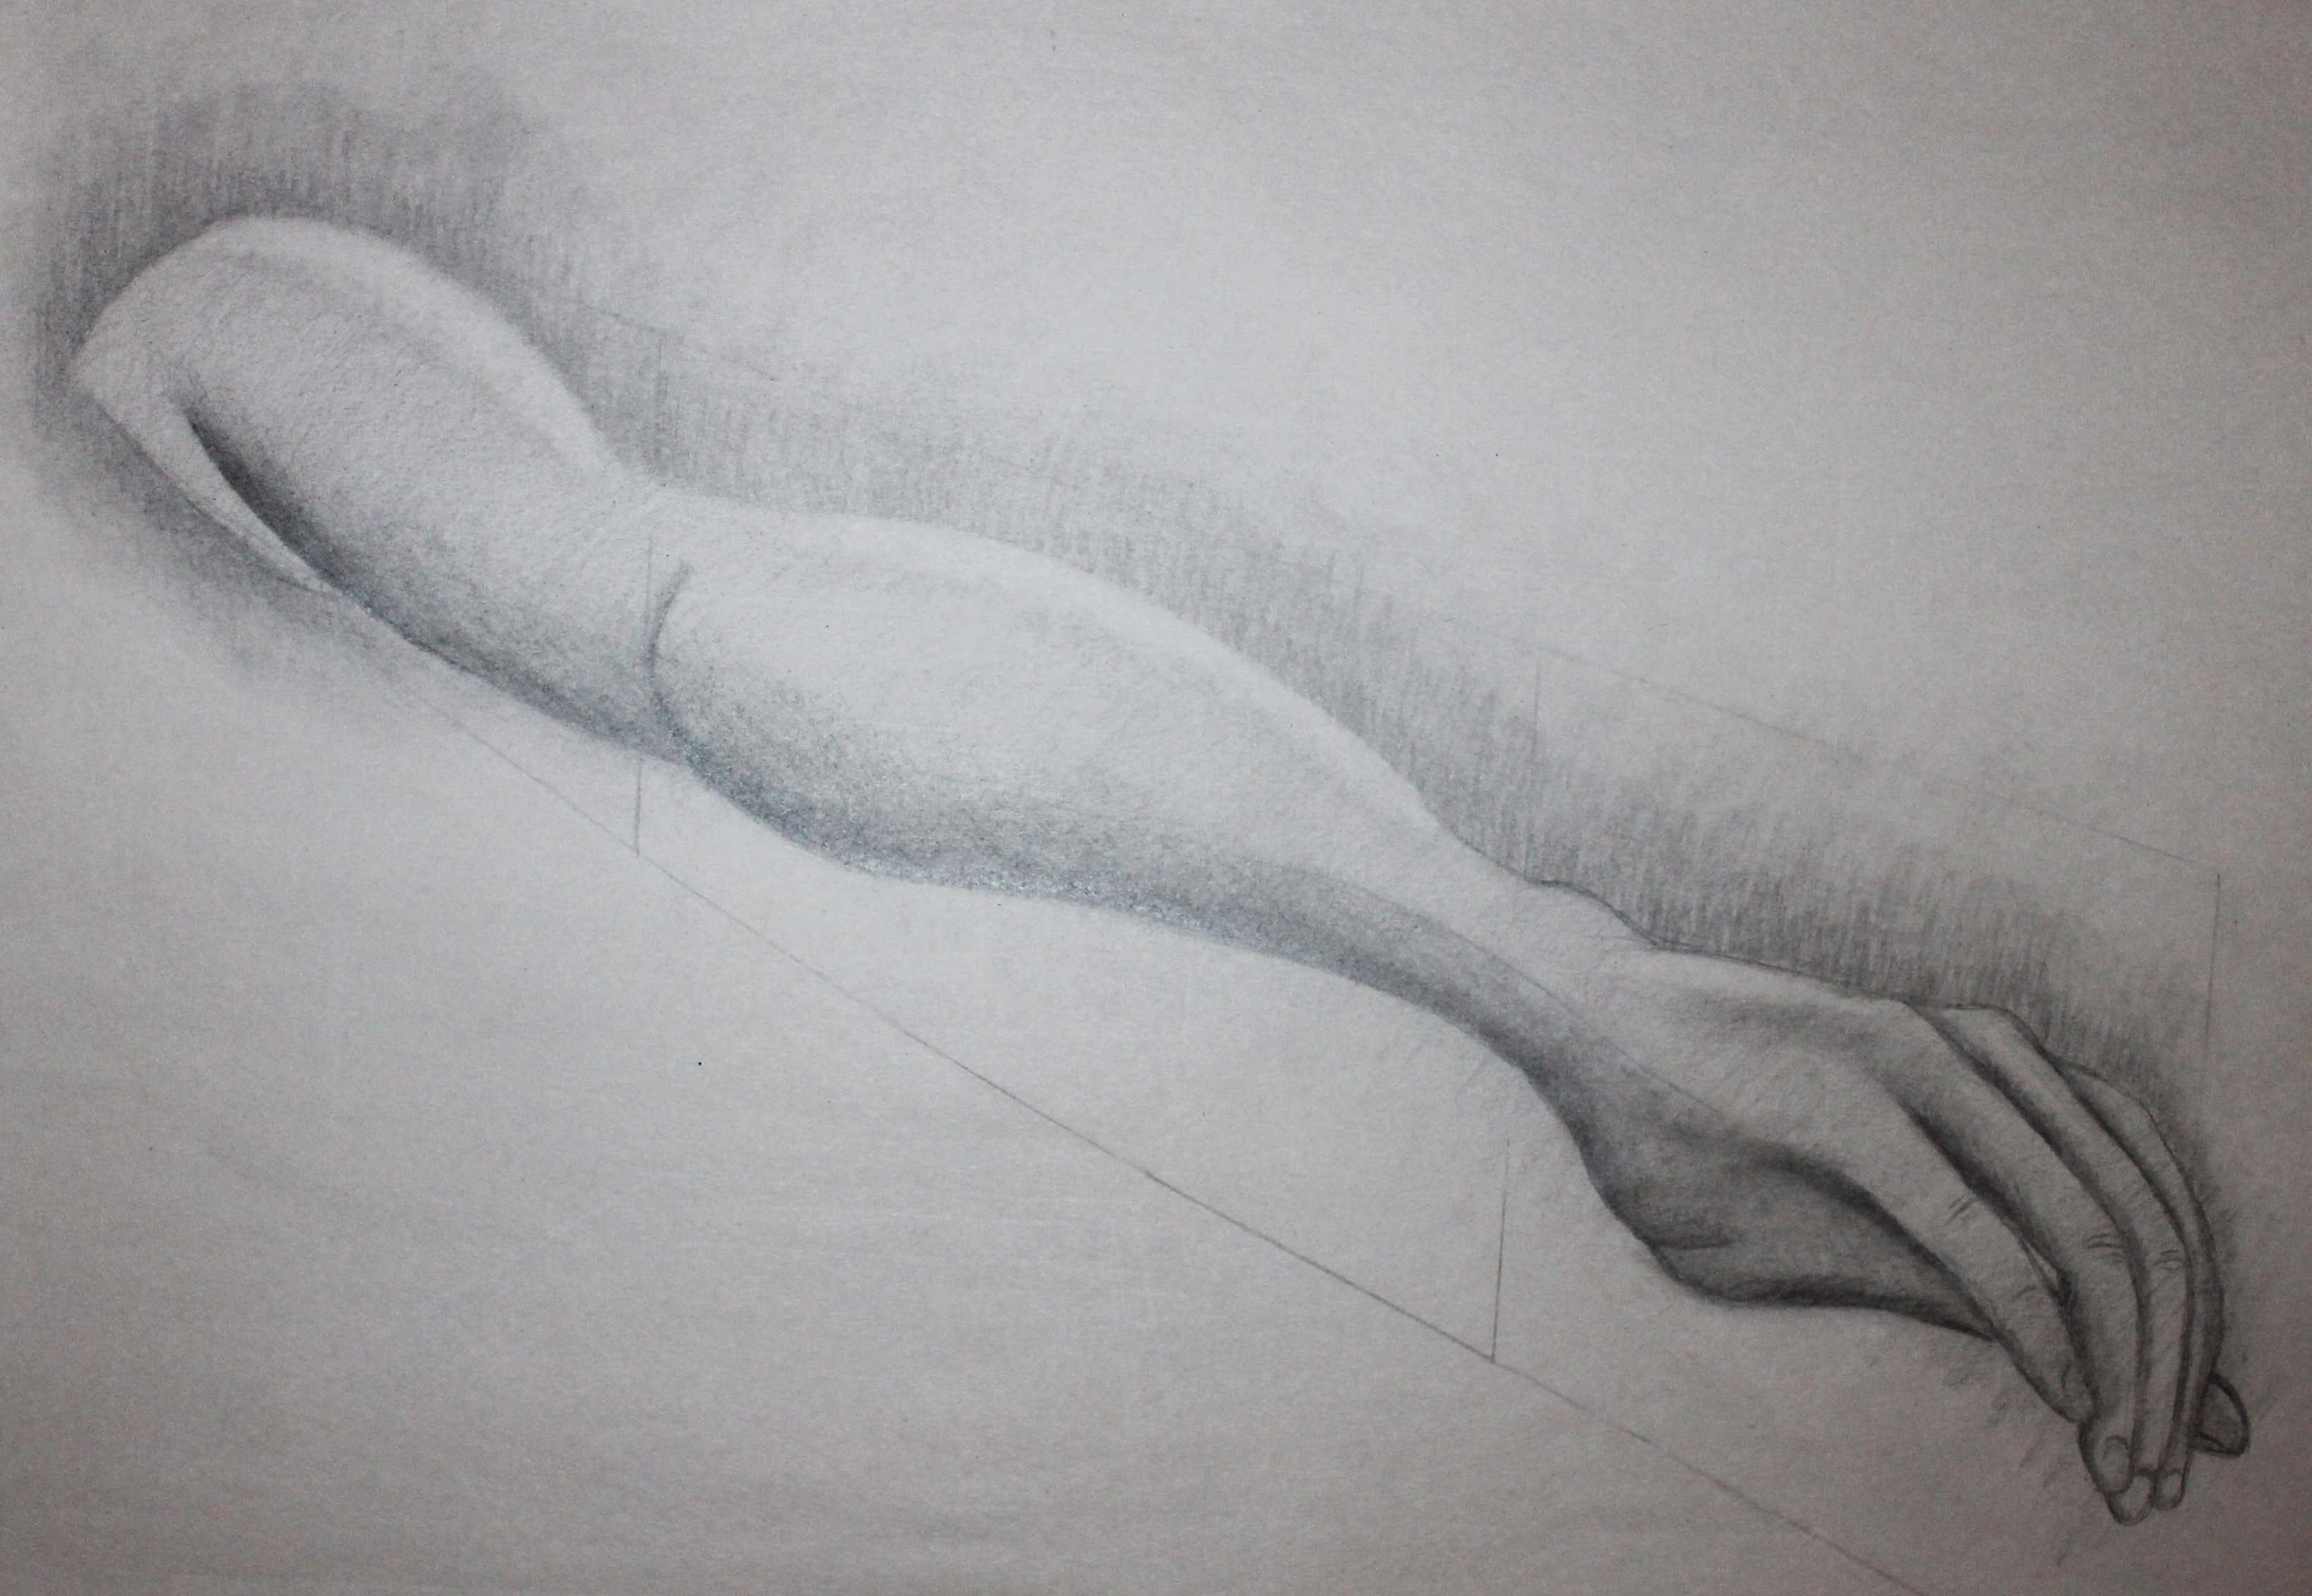 Foreshortened Arm